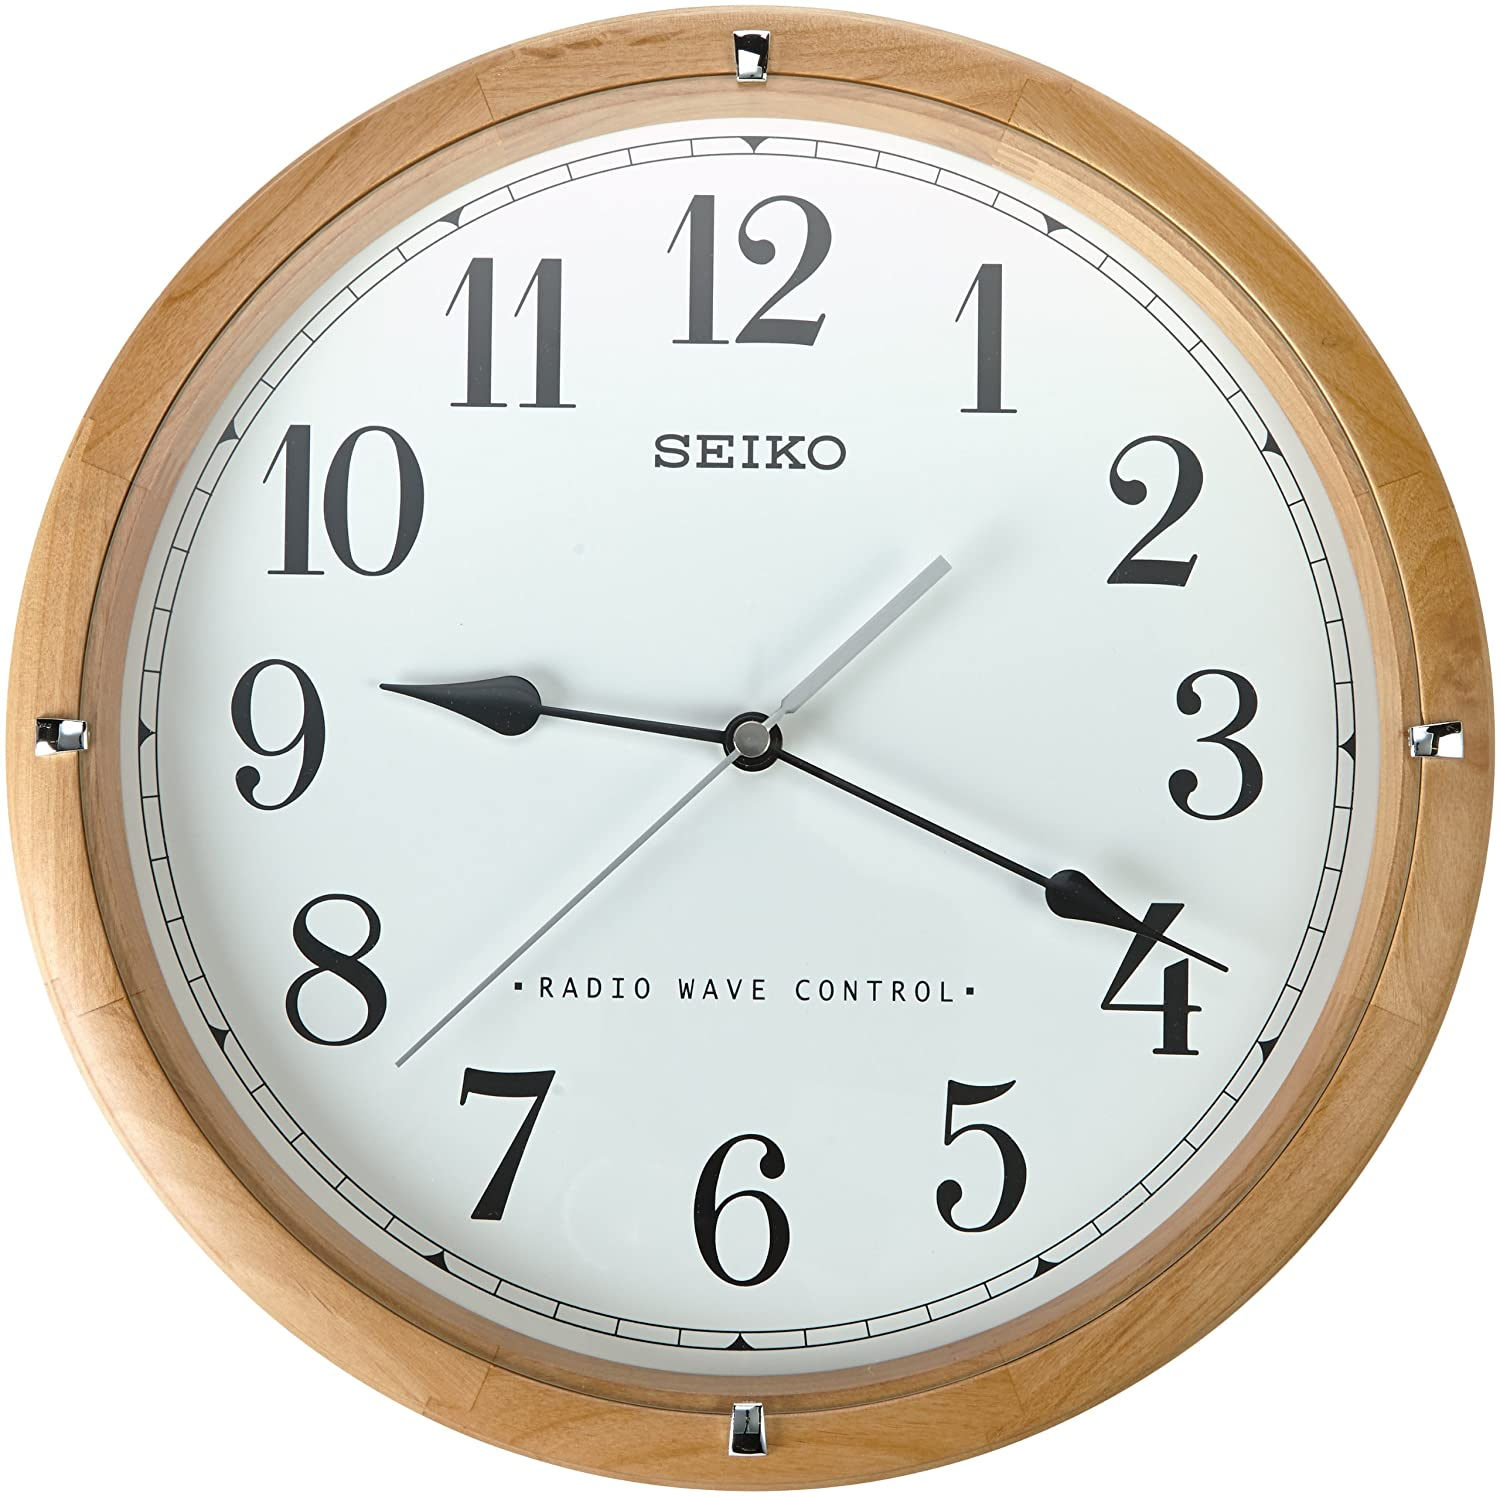 Seiko qxr303z radio controlled wooden wall clock amazon seiko qxr303z radio controlled wooden wall clock amazon kitchen home amipublicfo Image collections